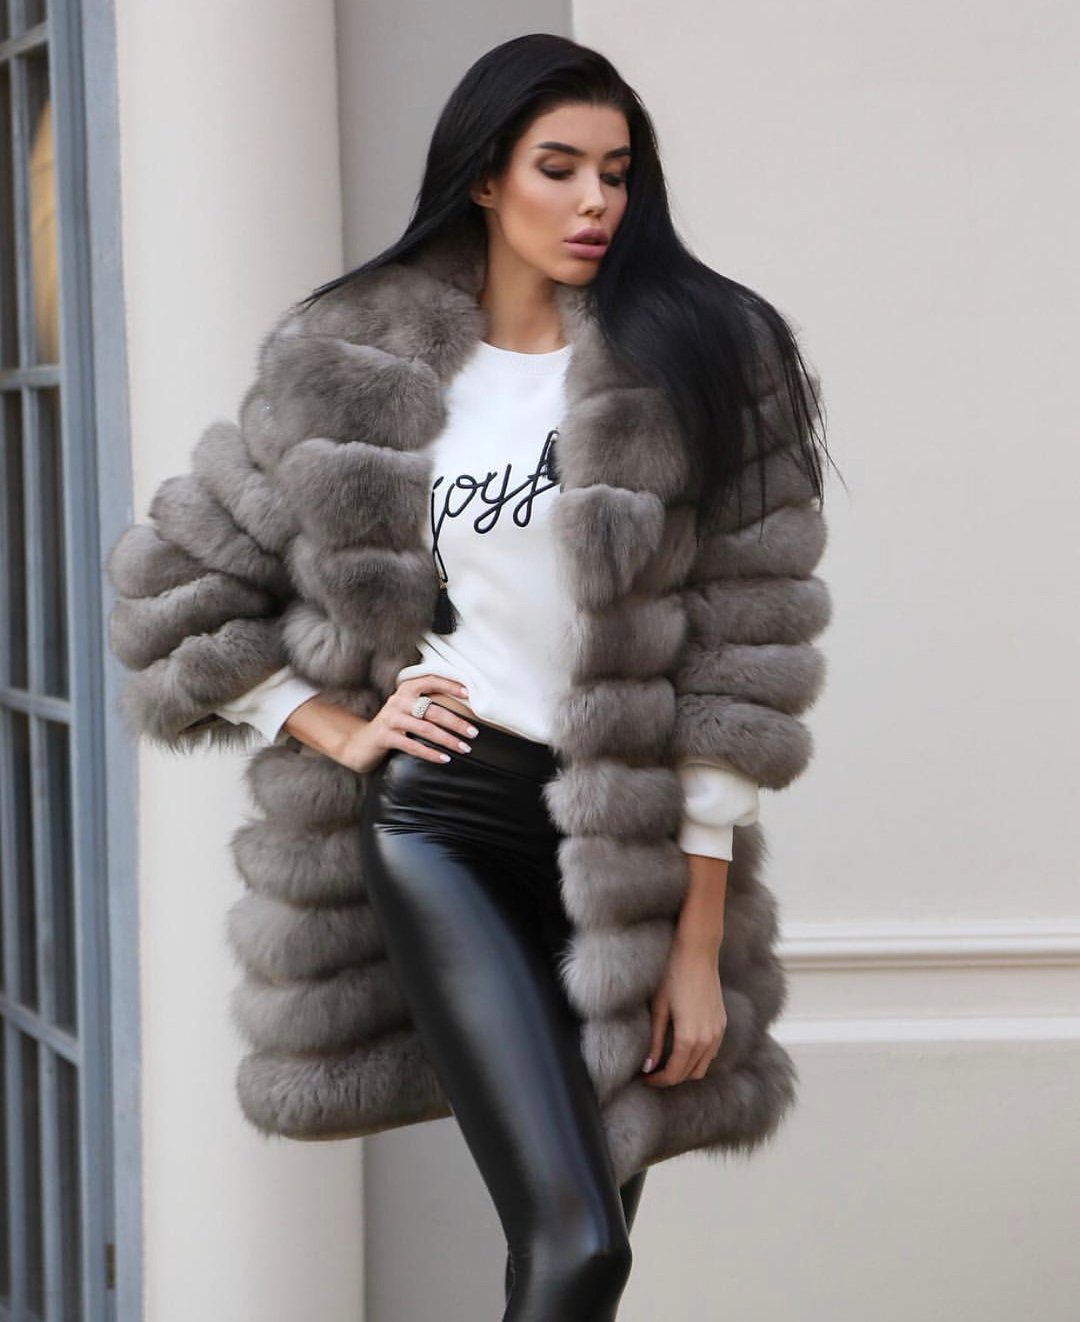 e58cec9f86 Avery Fur Coats » Made of 100% Real Fur » Aria Moda